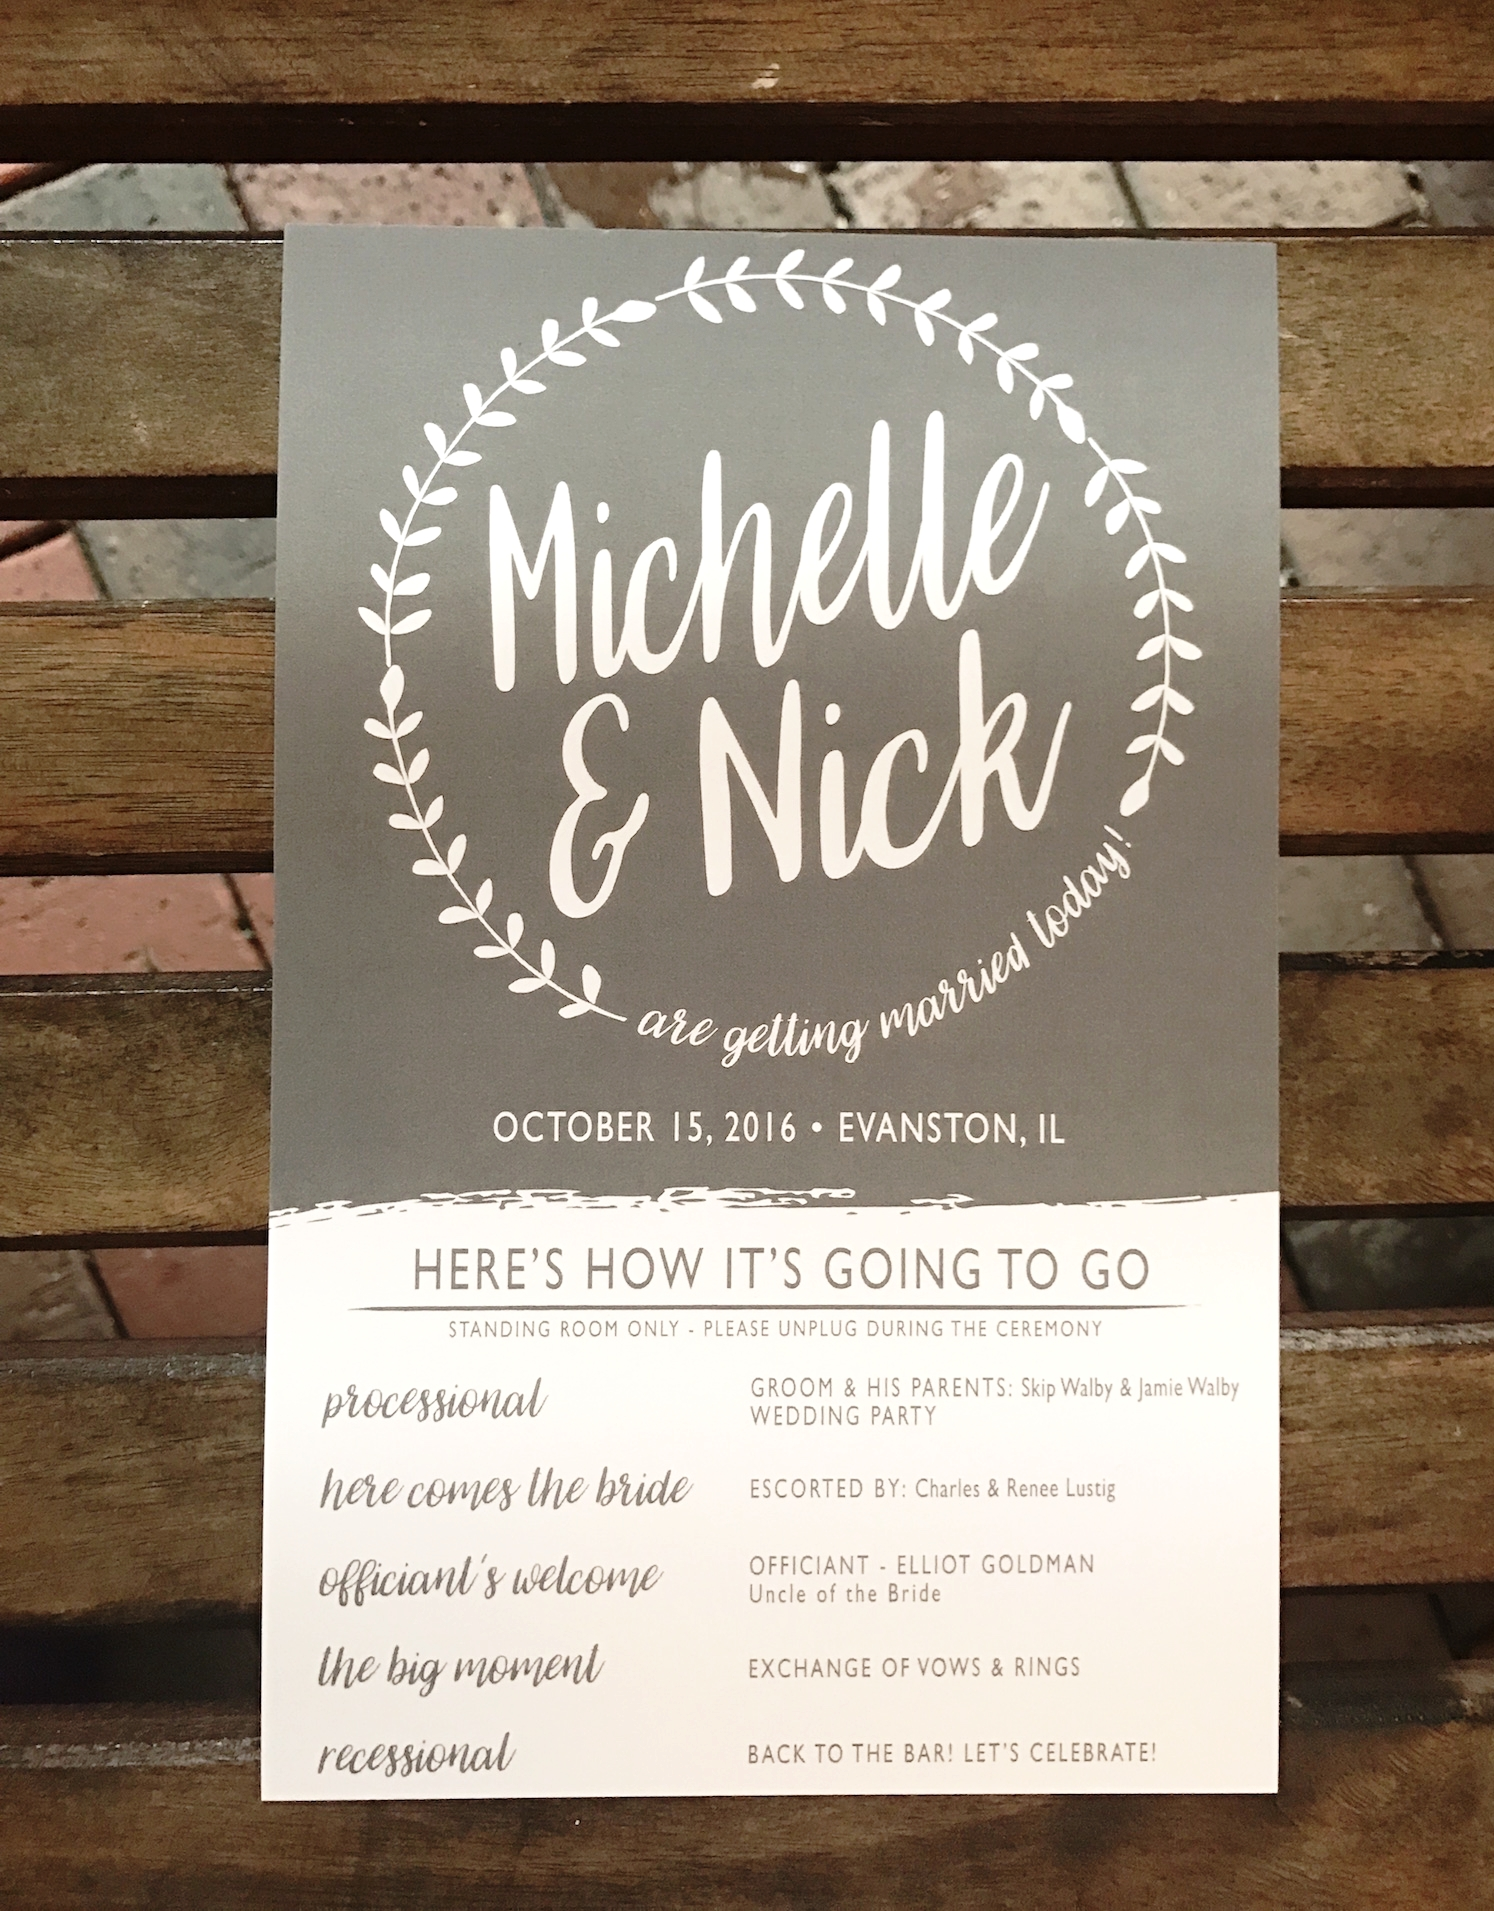 Industrial Chic Modern Rustic Wedding Ceremony Program in Charcoal by Ashley Parker Creative